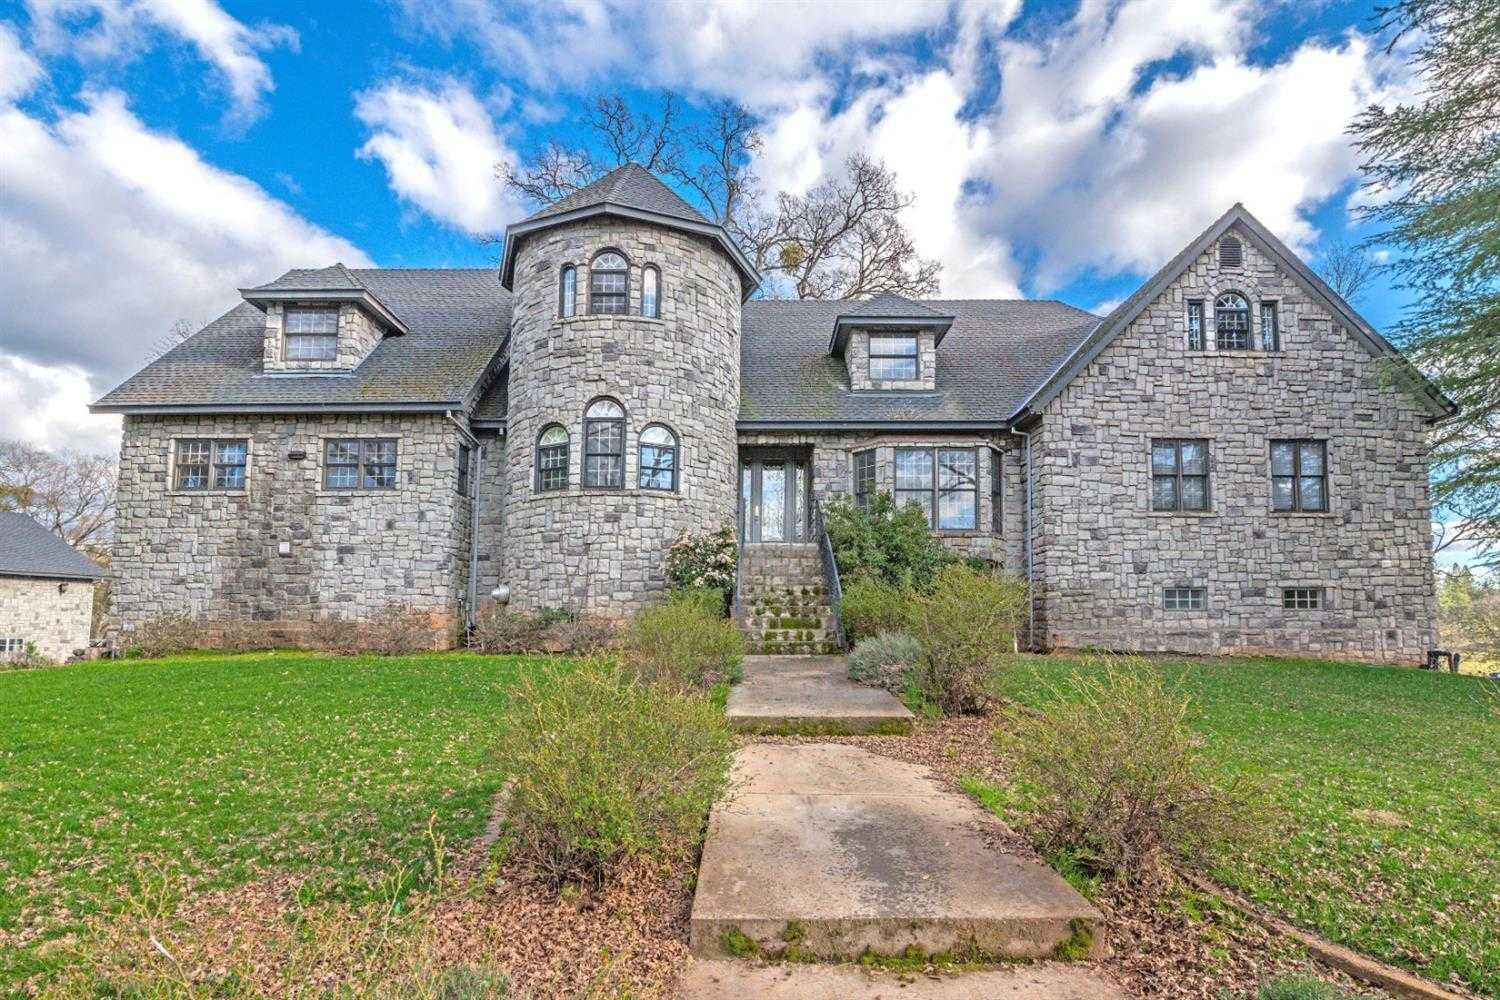 $2,900,000 - 7Br/5Ba -  for Sale in Jackson